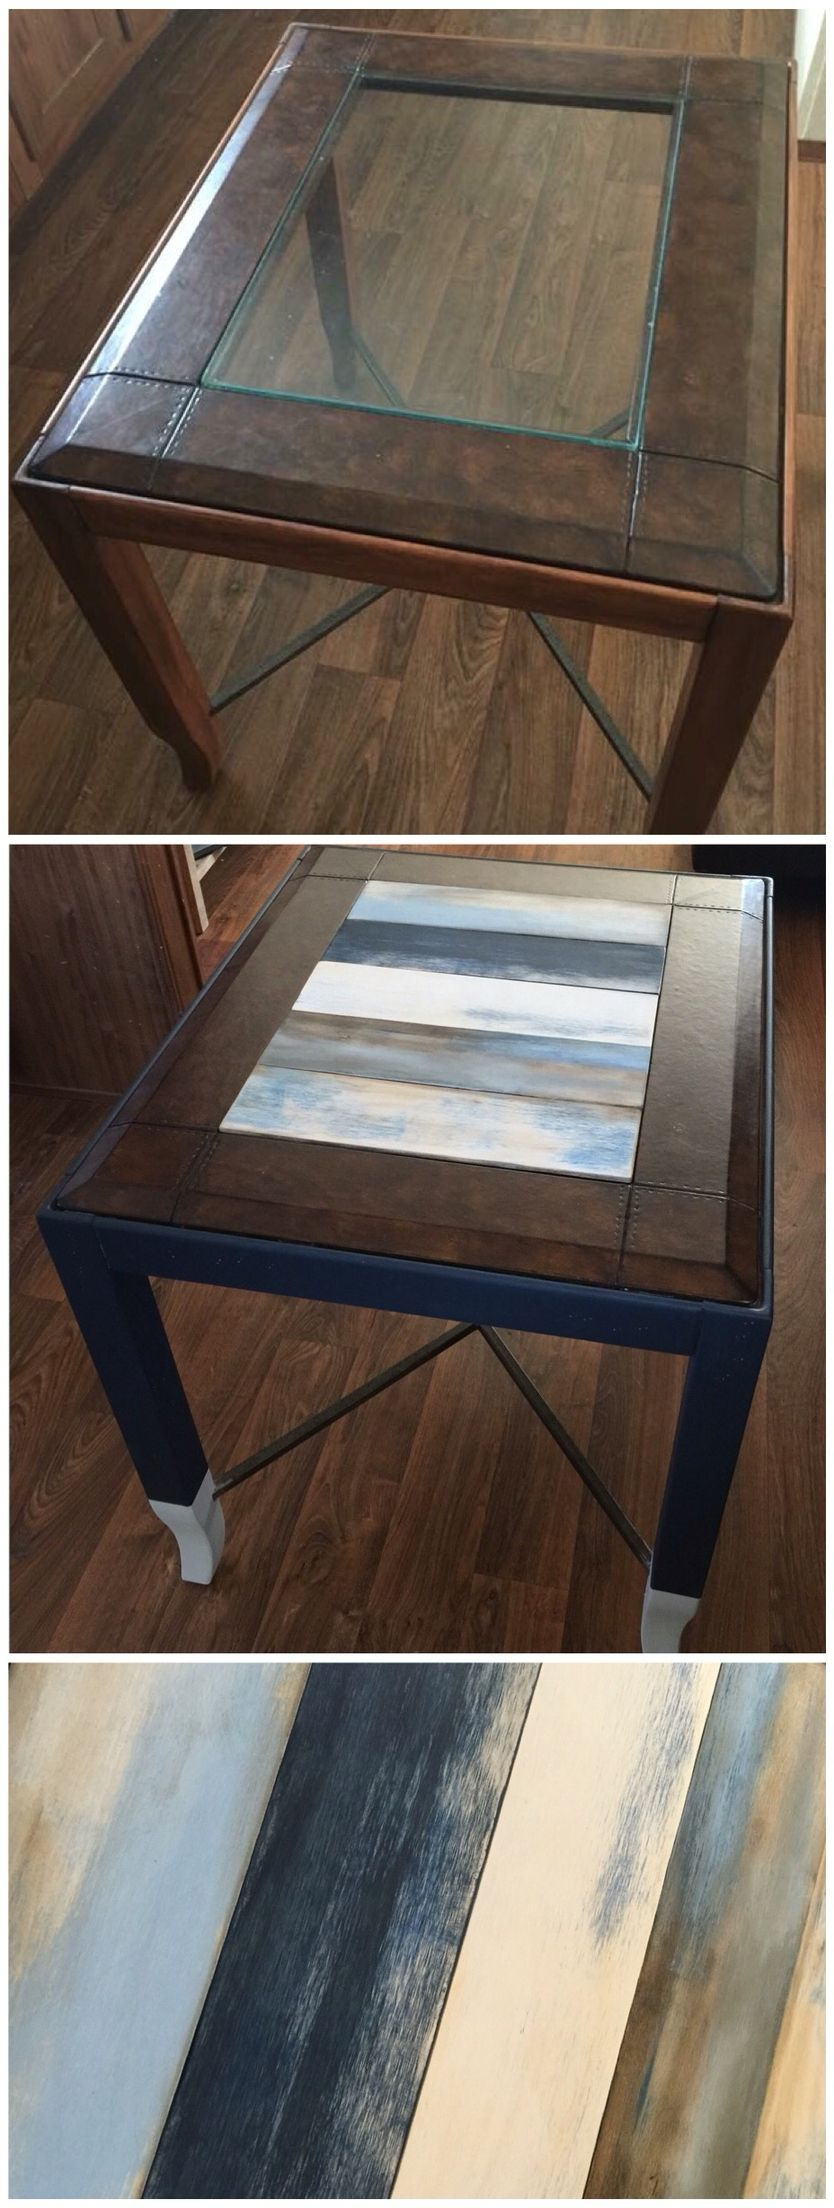 Replaced Glass Top End Table With Wood Panels And